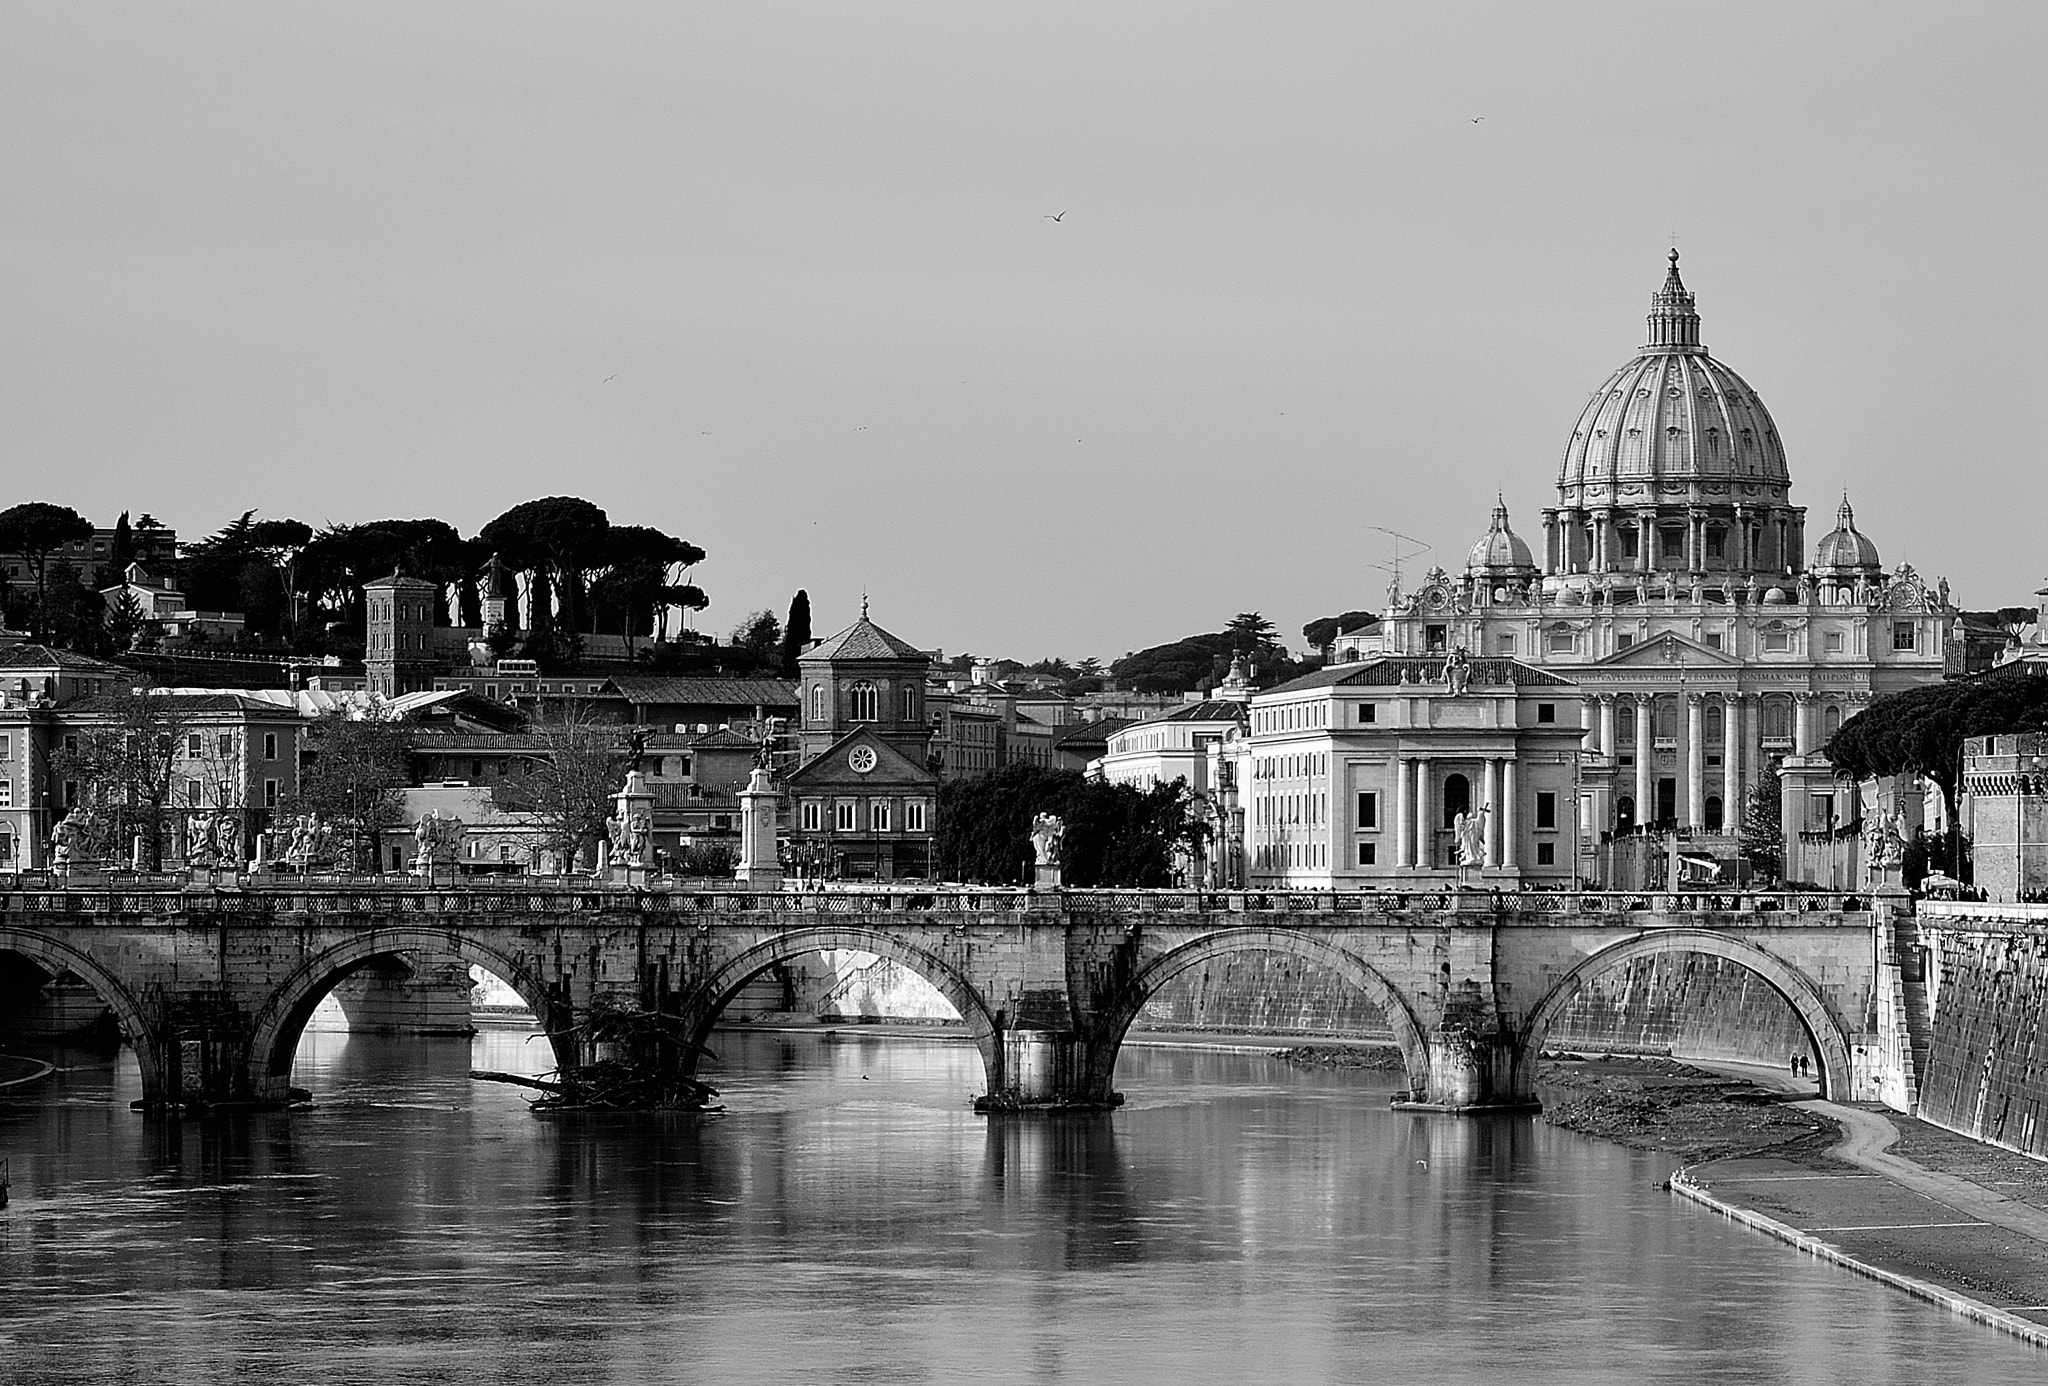 Photograph St. Peter's, Rome. by Patrizio Matteini on 500px